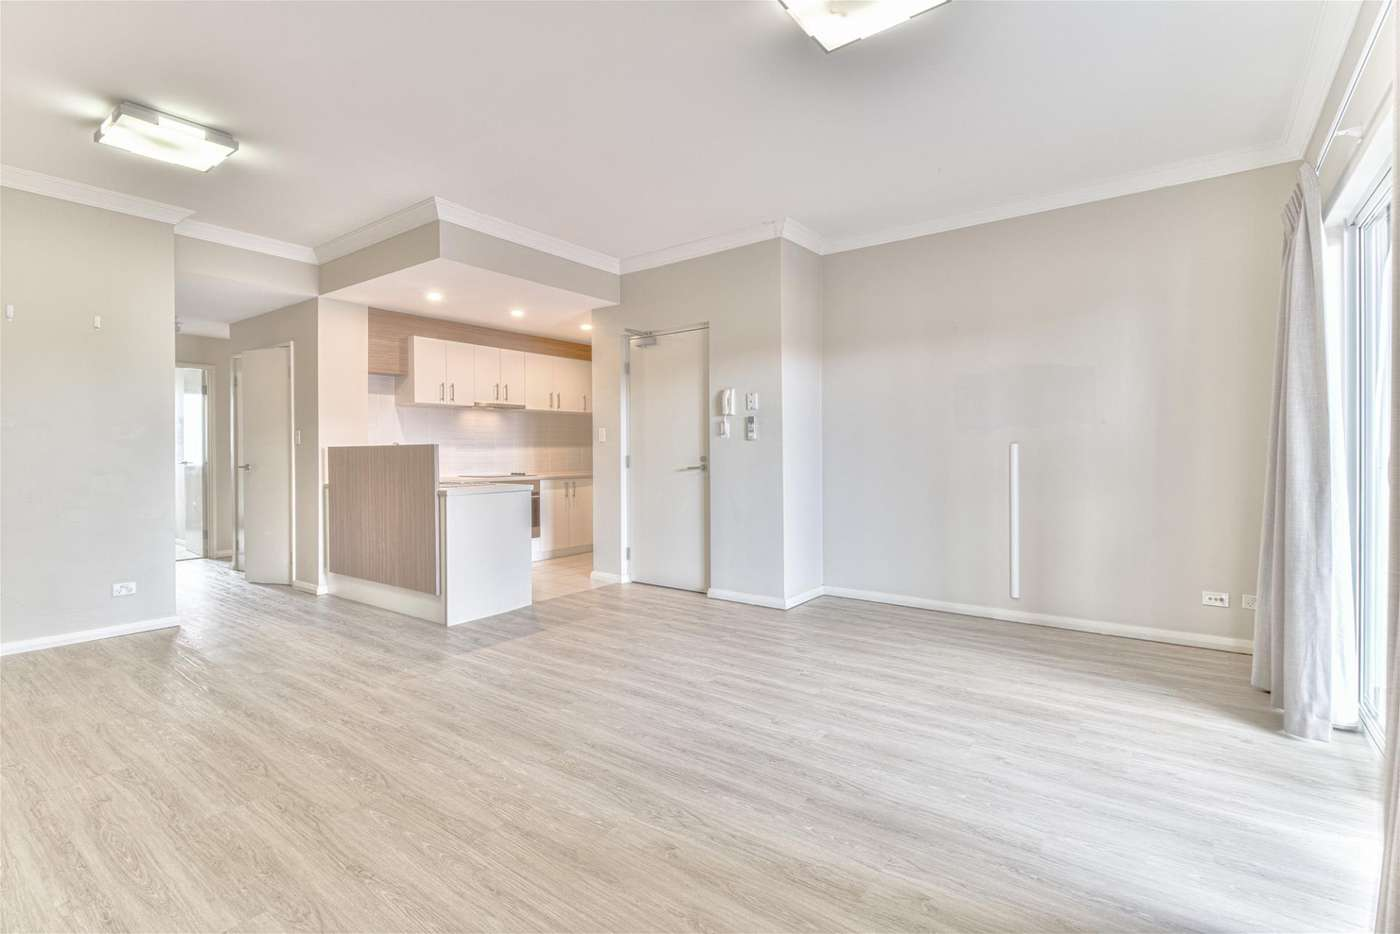 Main view of Homely apartment listing, 7/16 Hammersmith Court, Joondalup WA 6027